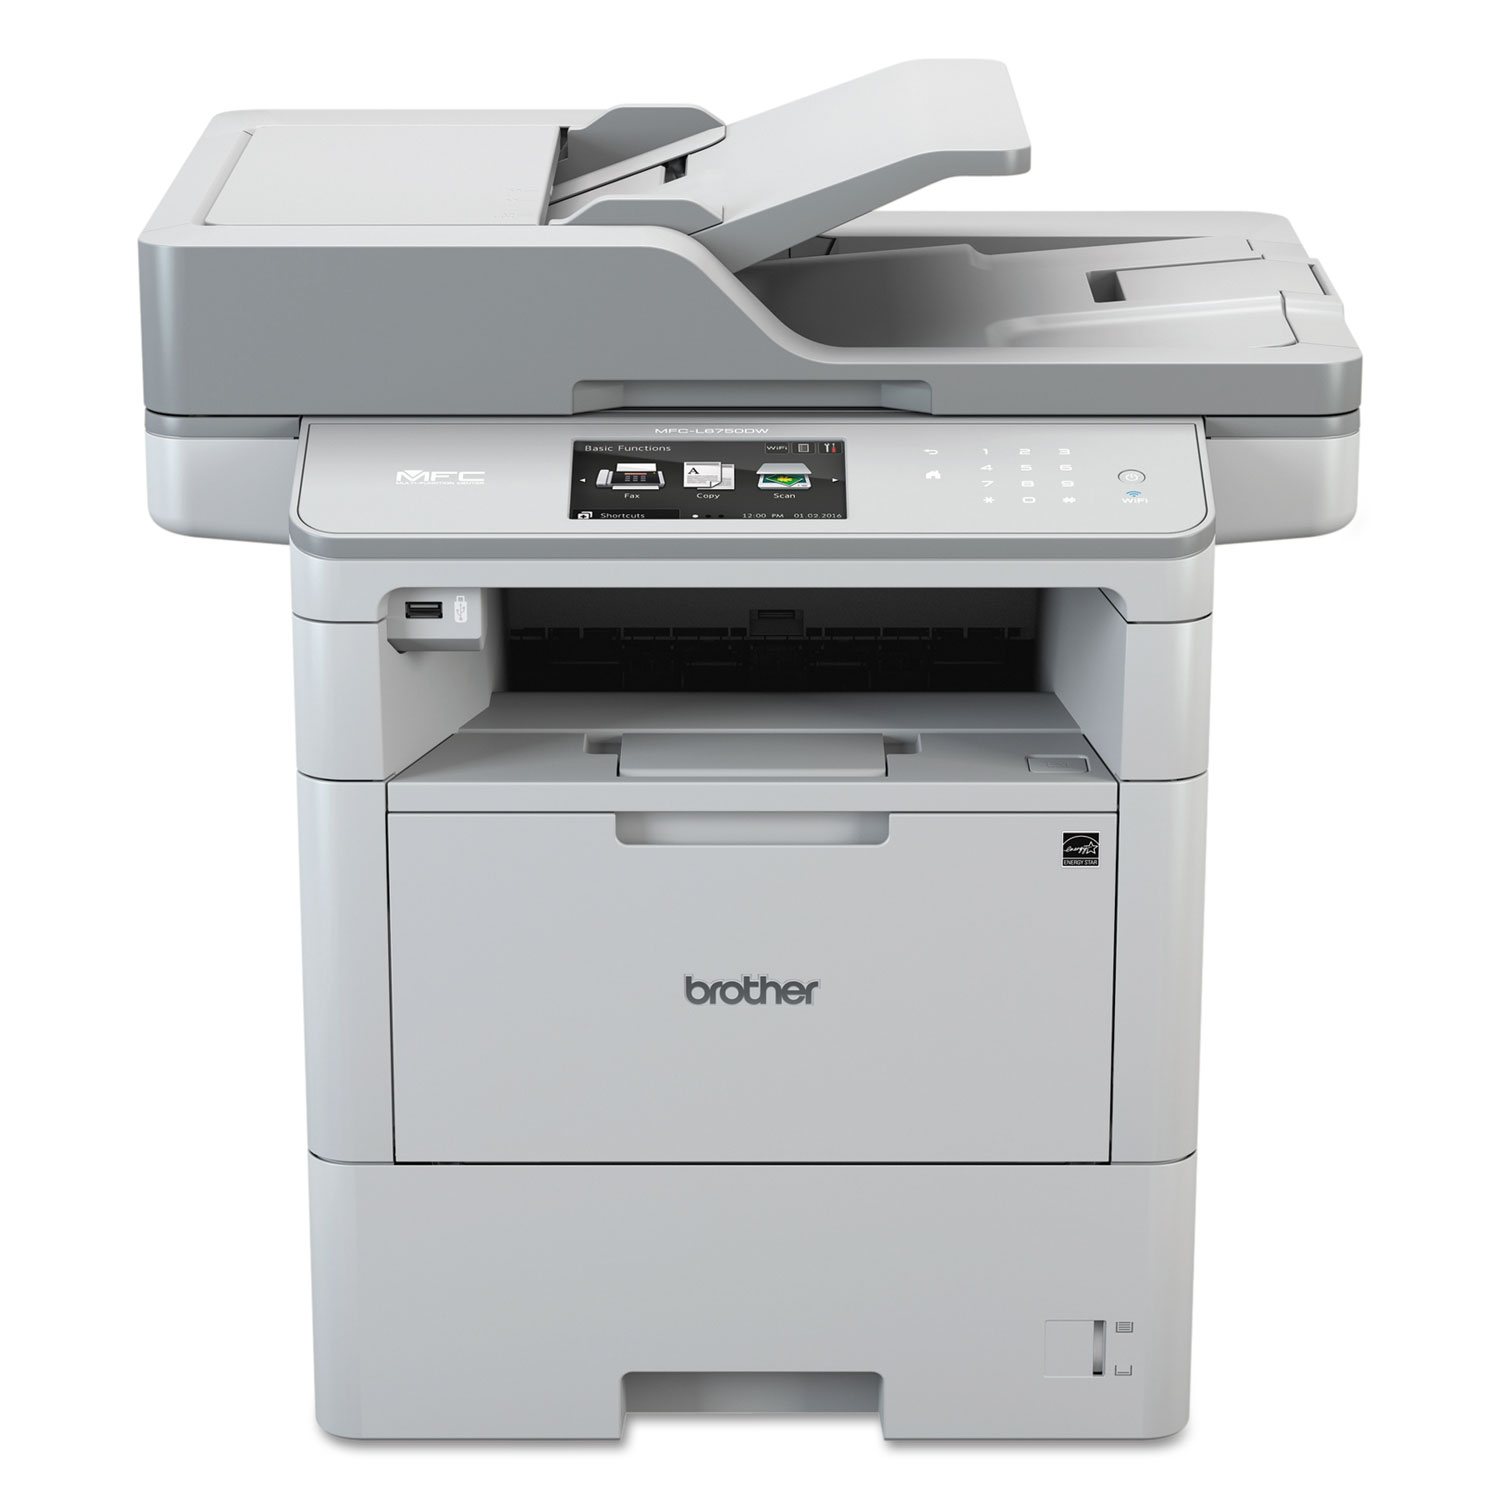 MFC-L6750DW Wireless Business Laser All-in-One Printer, Copy/Fax/Print/Scan